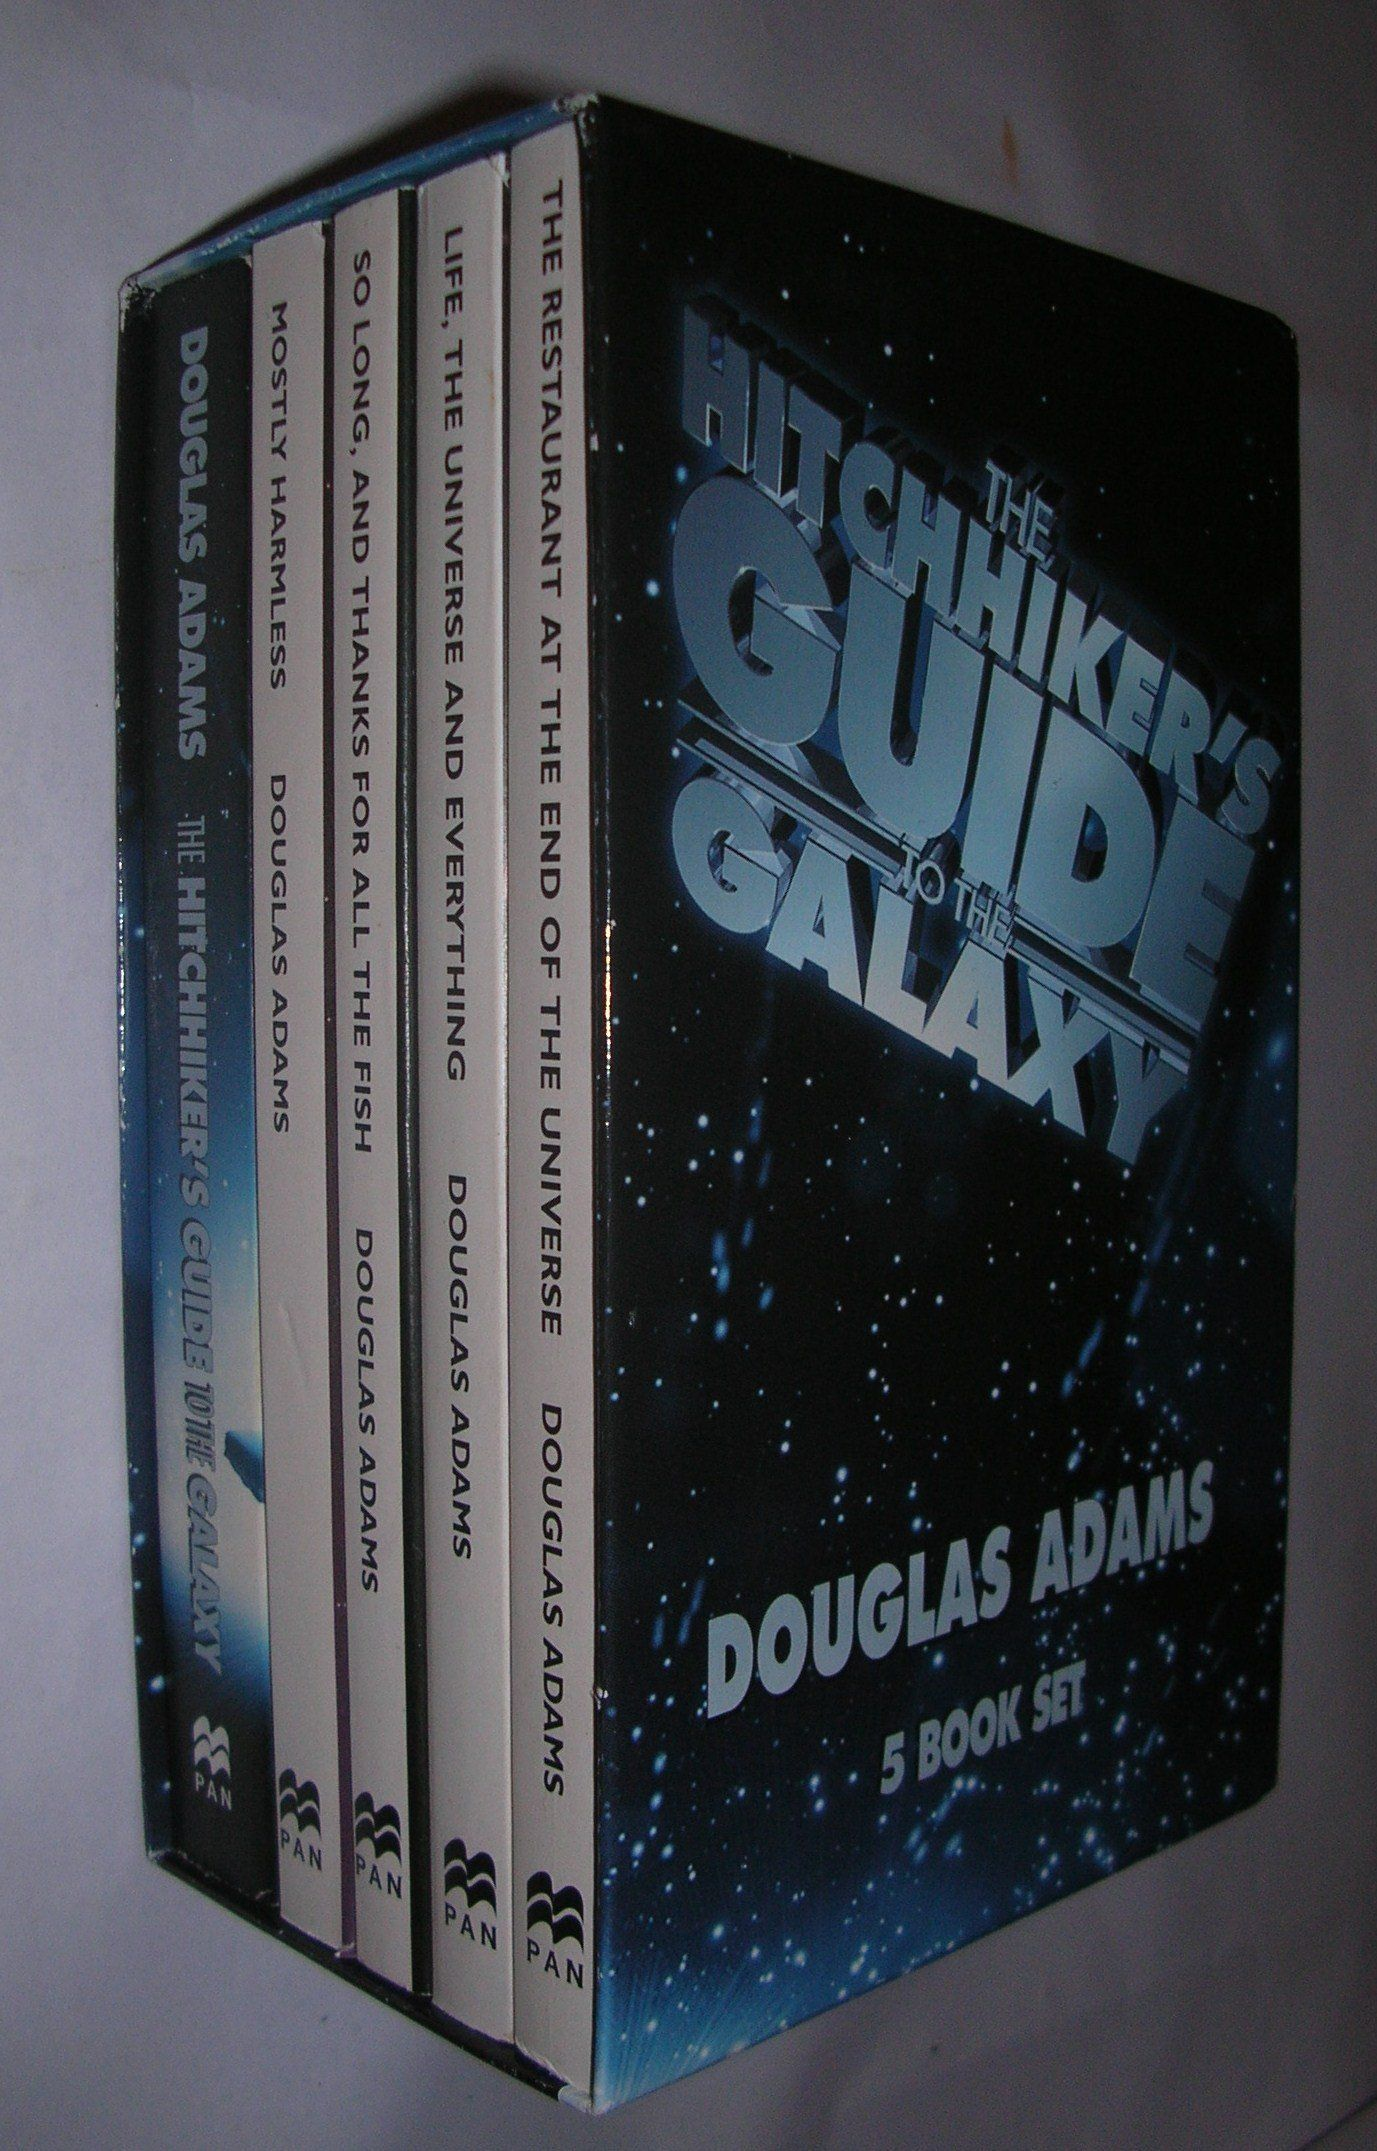 Douglas Adams Books